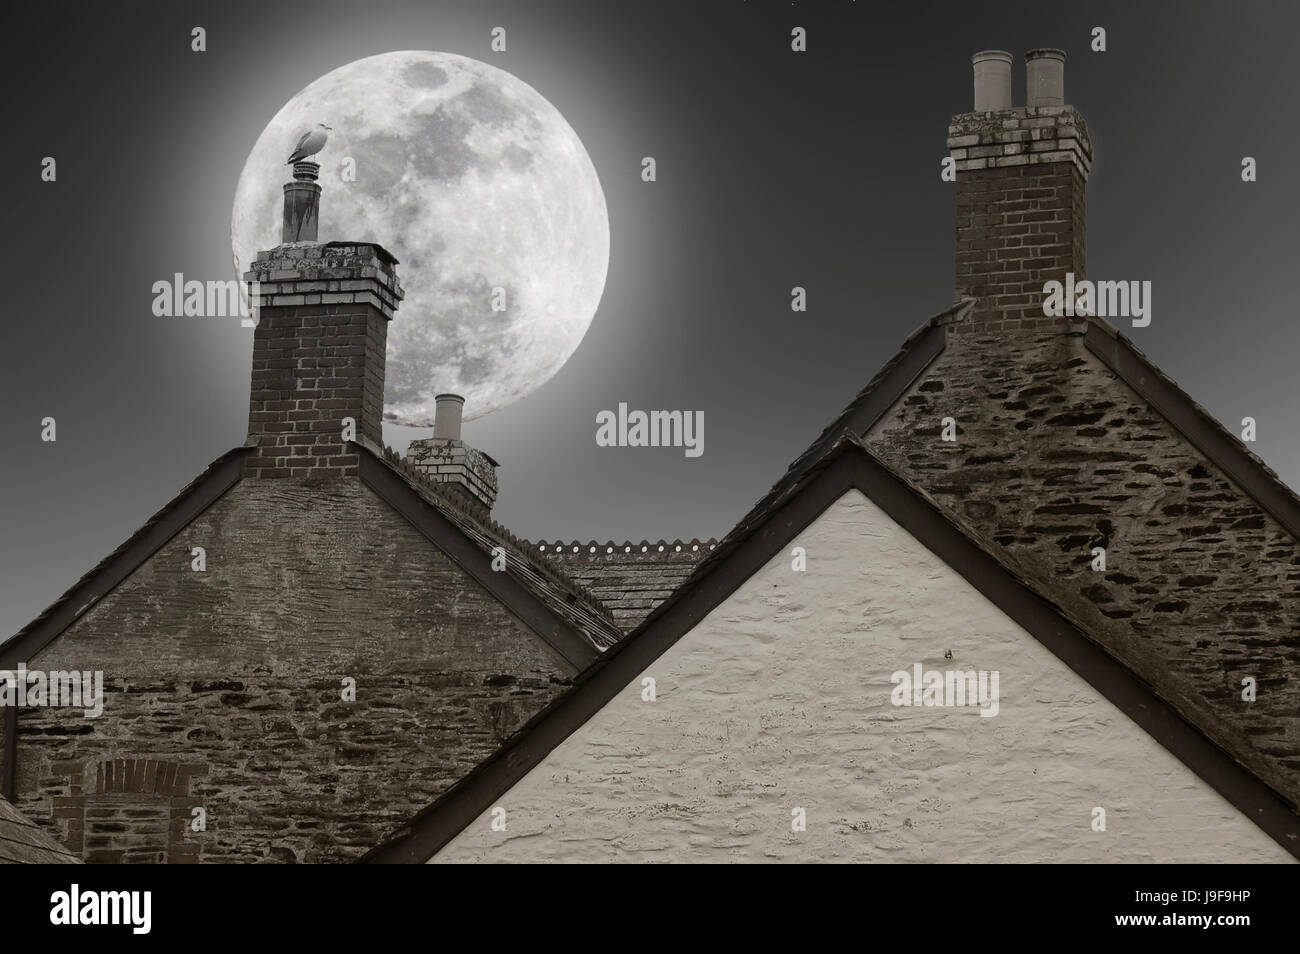 A night of full moon over the chimneys of the houses - Stock Image